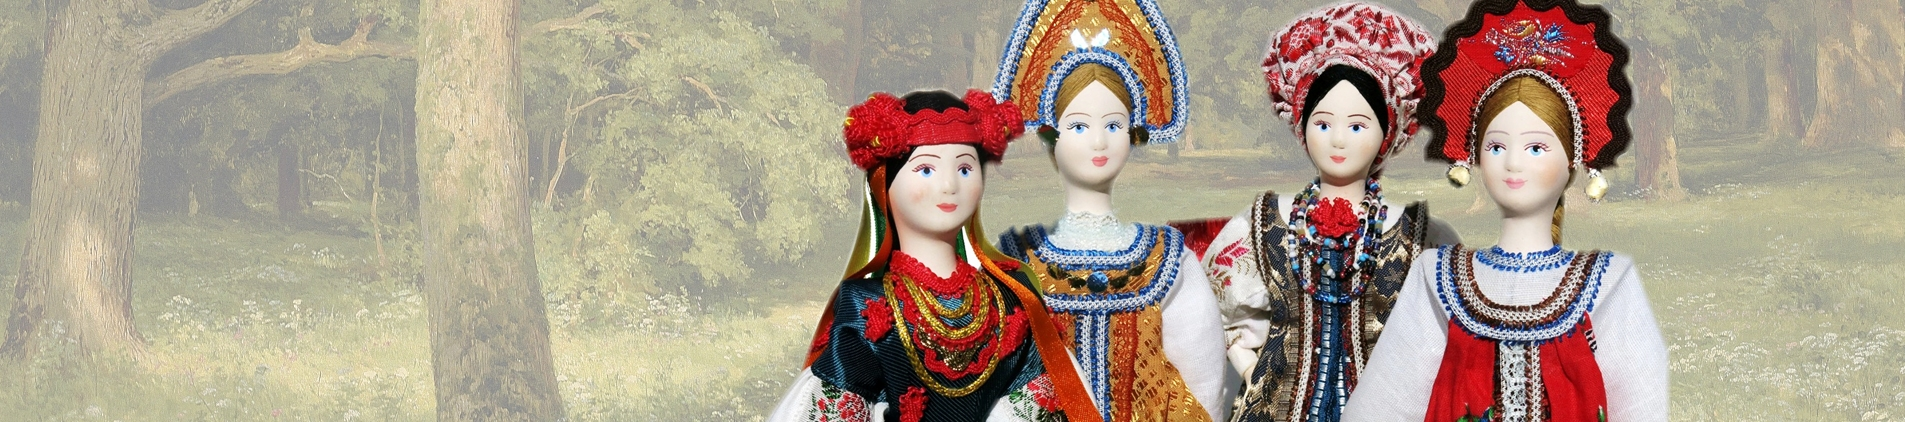 Handmade Russian porcelain and cloth dolls